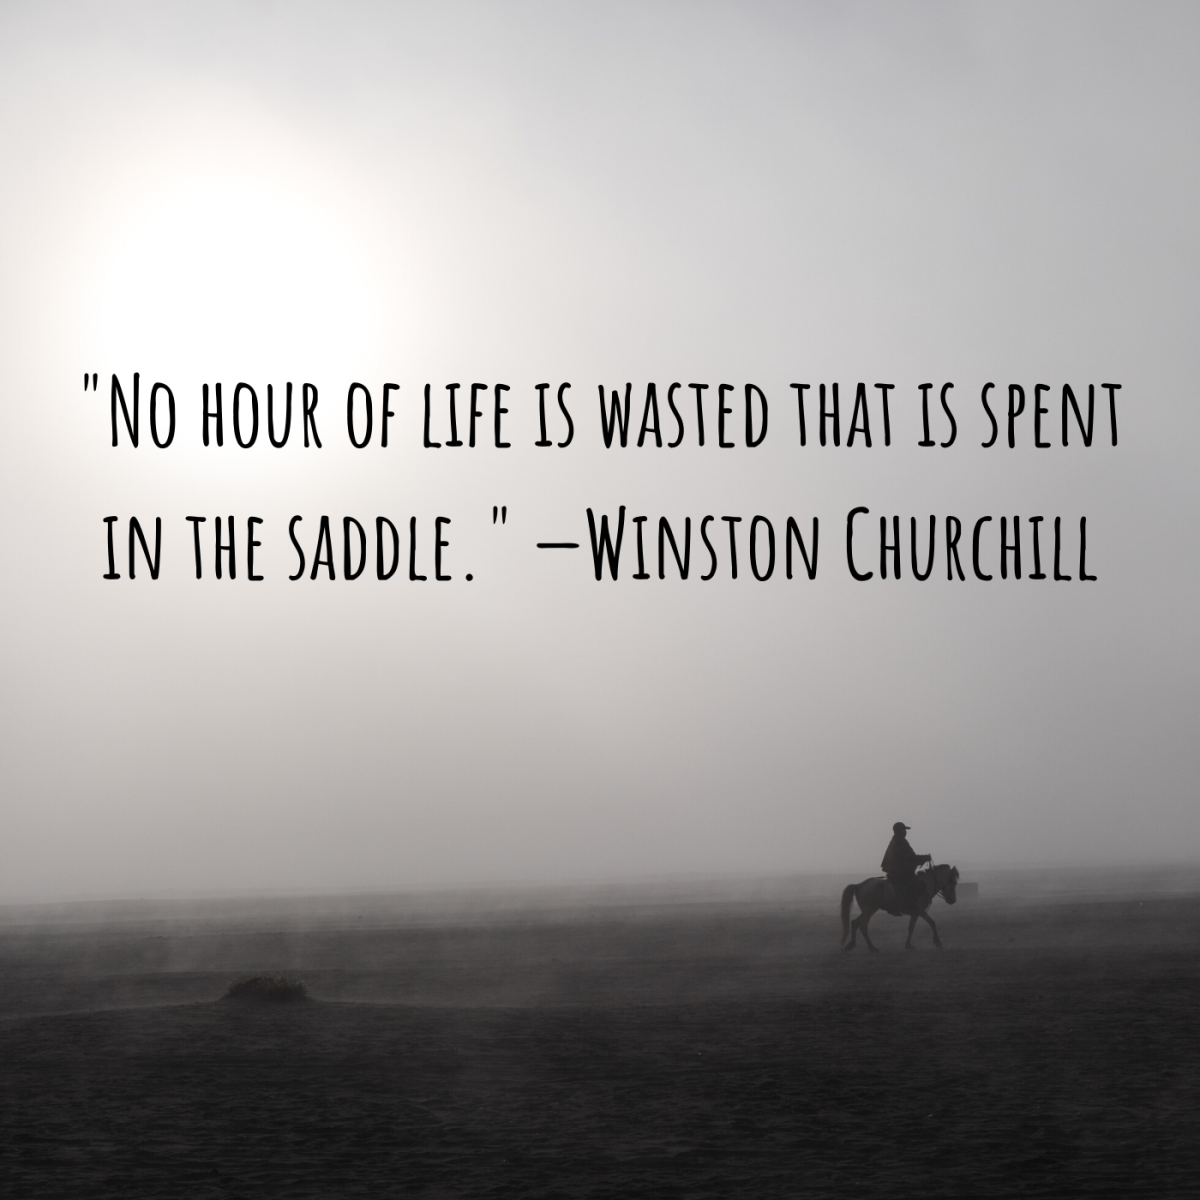 """No hour of life is wasted that is spent in the saddle."" —Winston Churchill"